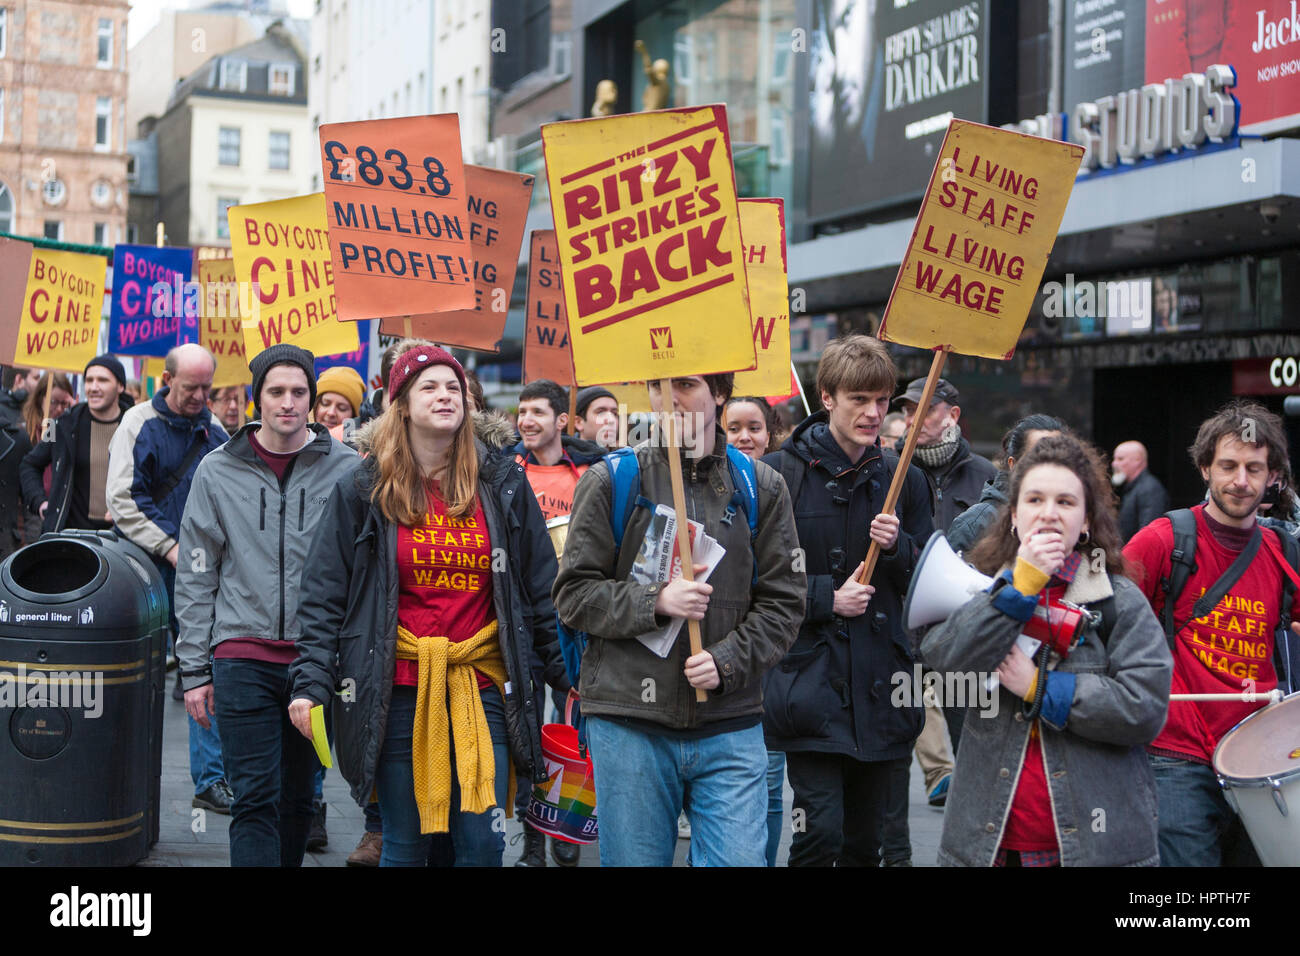 London, UK. 25th Feb, 2017. Picturehouse Cinema workers come out on strike as part of their long running campaign - Stock Image